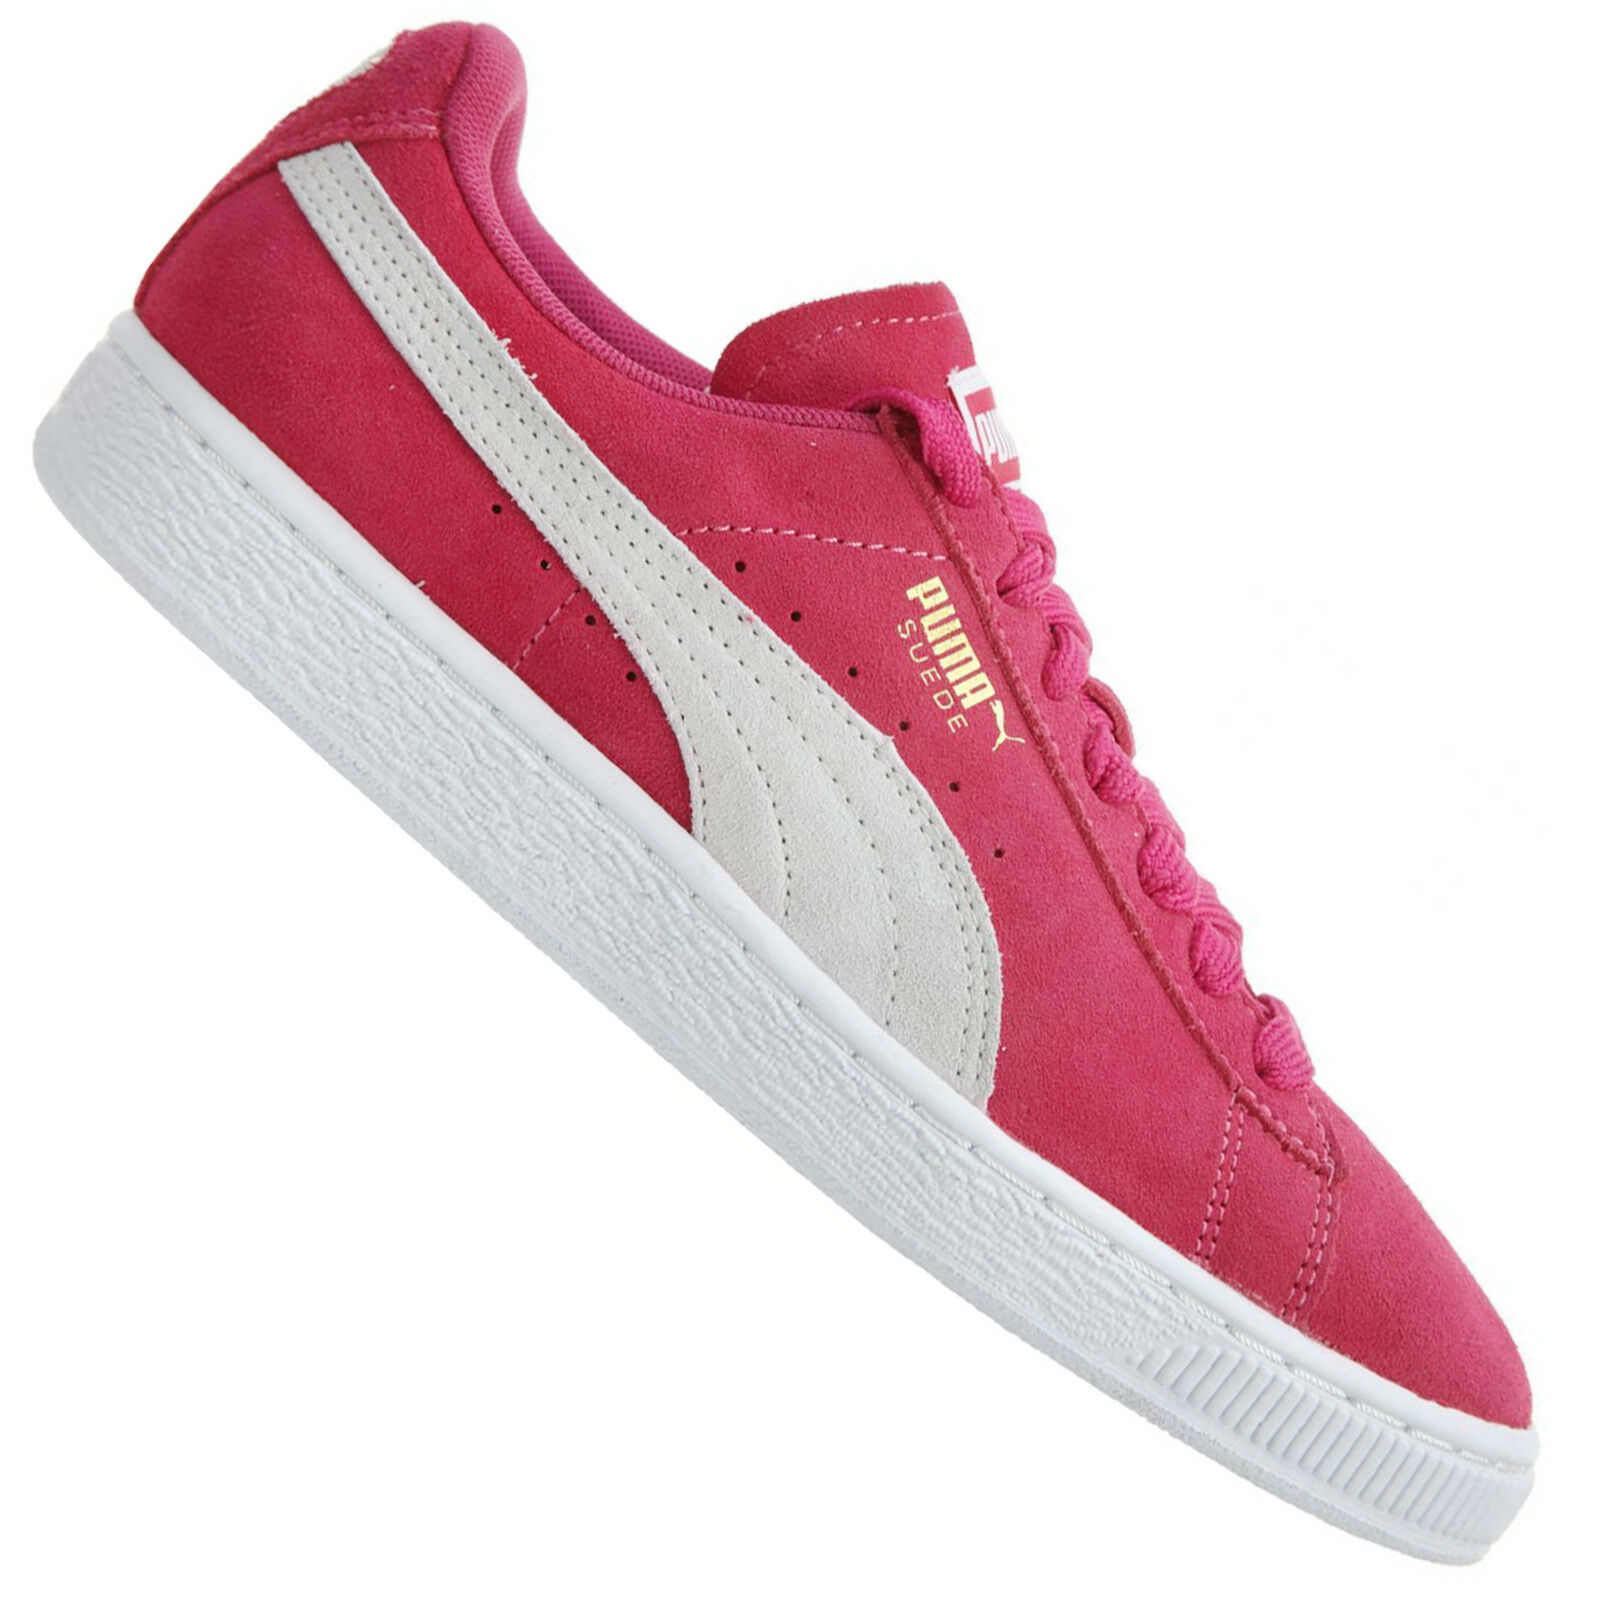 Puma Originals Suede Classic Womens Trainers Suede Sneakers Pink White